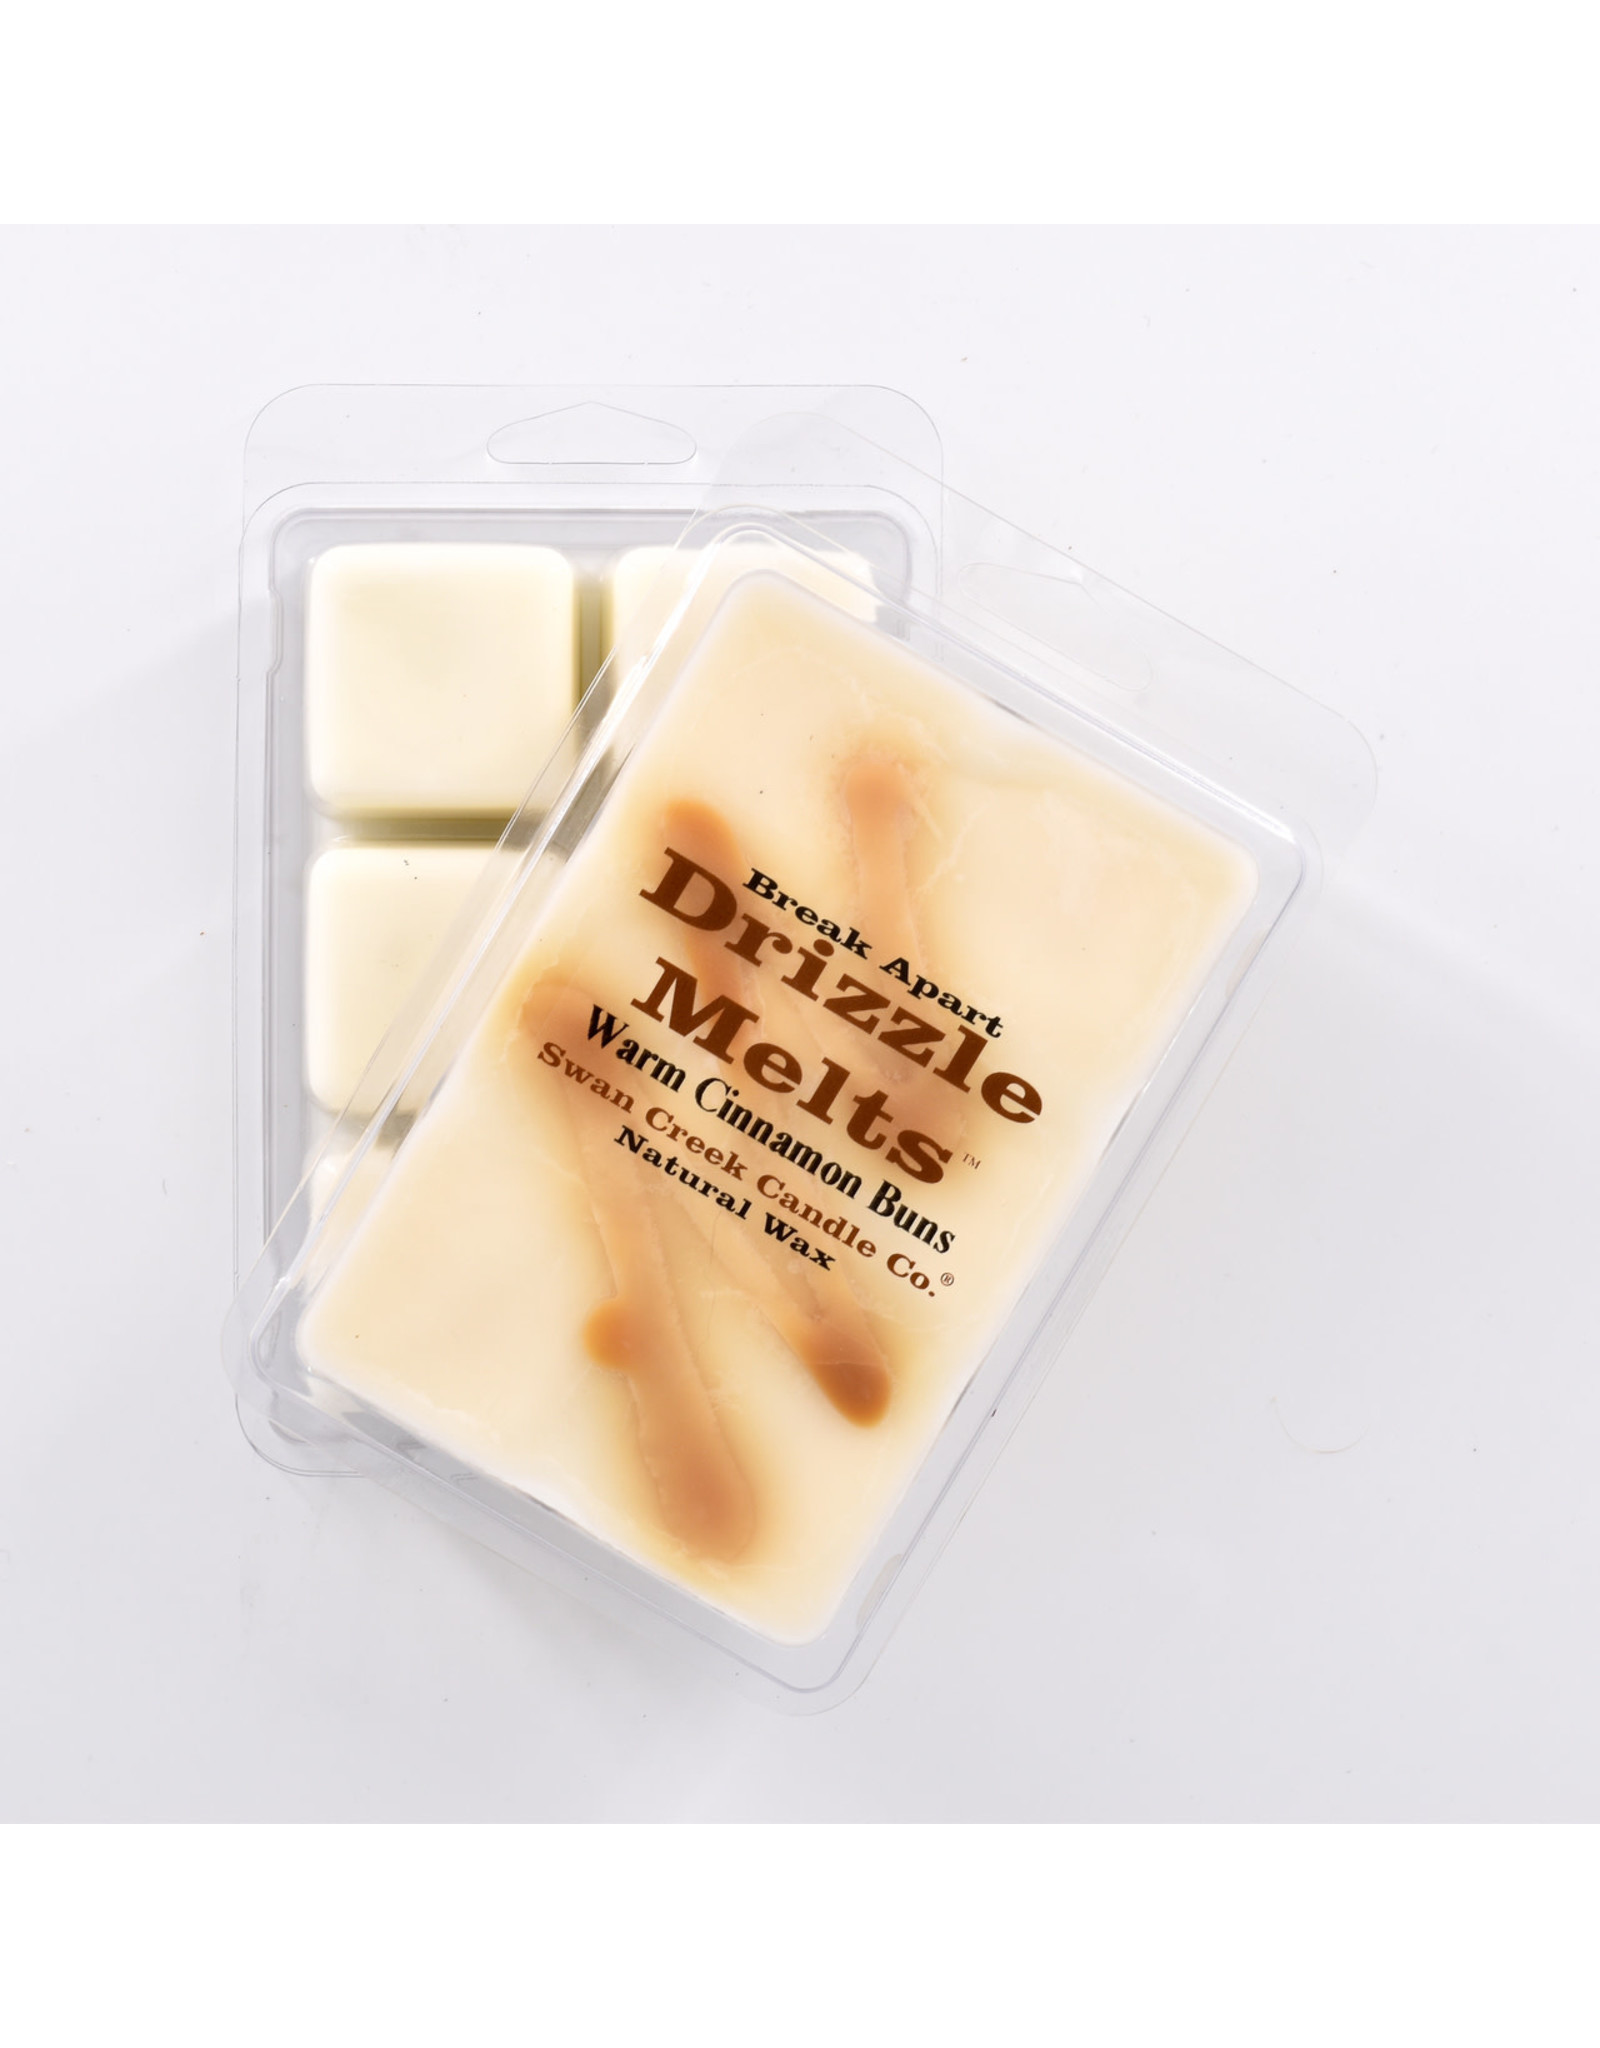 Swan Creek Wax Melts, Warm Cinnamon Buns 5.25oz